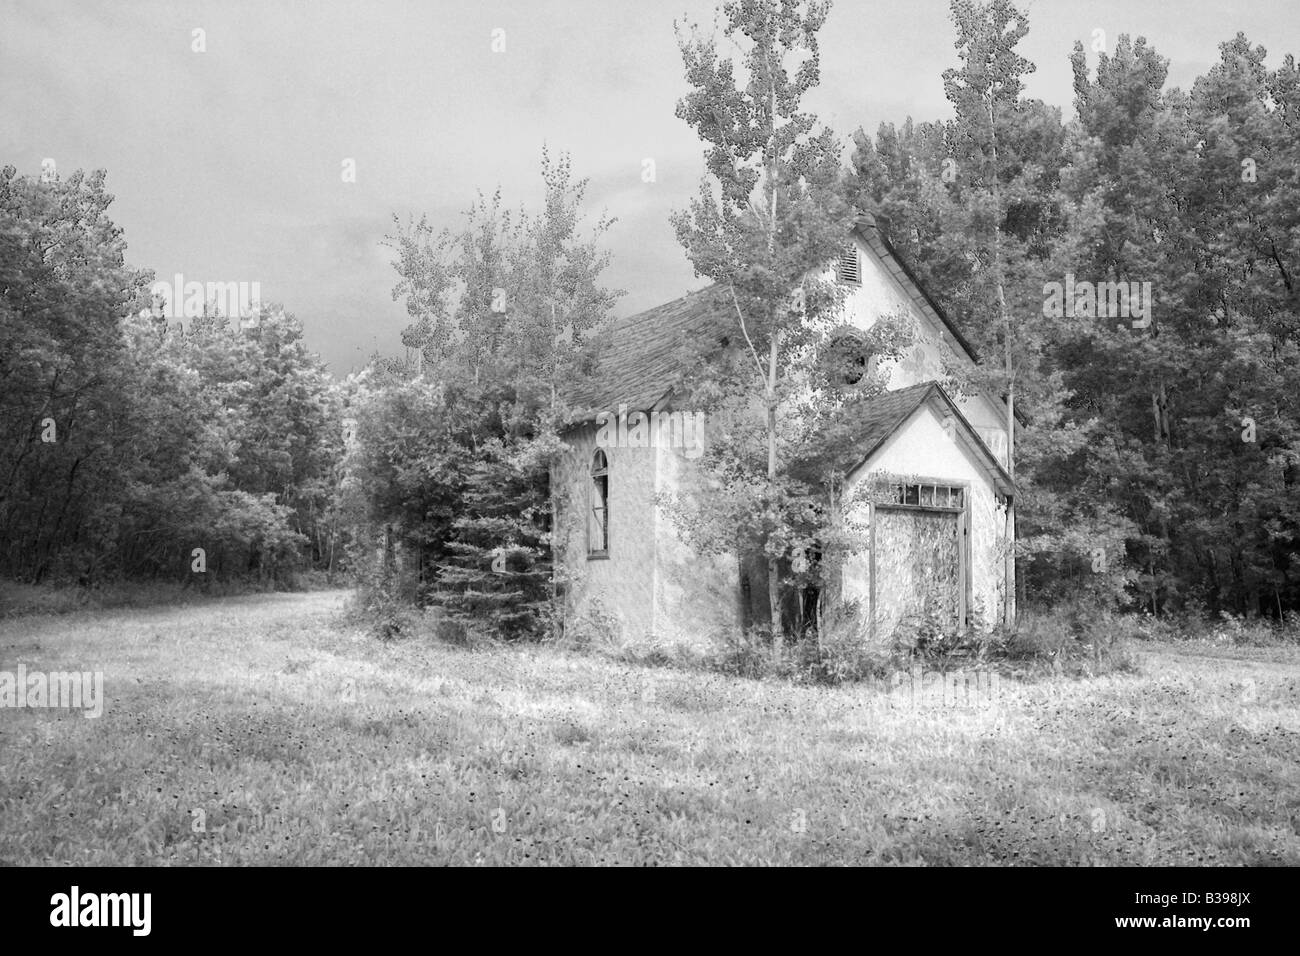 Abandoned old church in Manning area (infra effect), Alberta - Stock Image